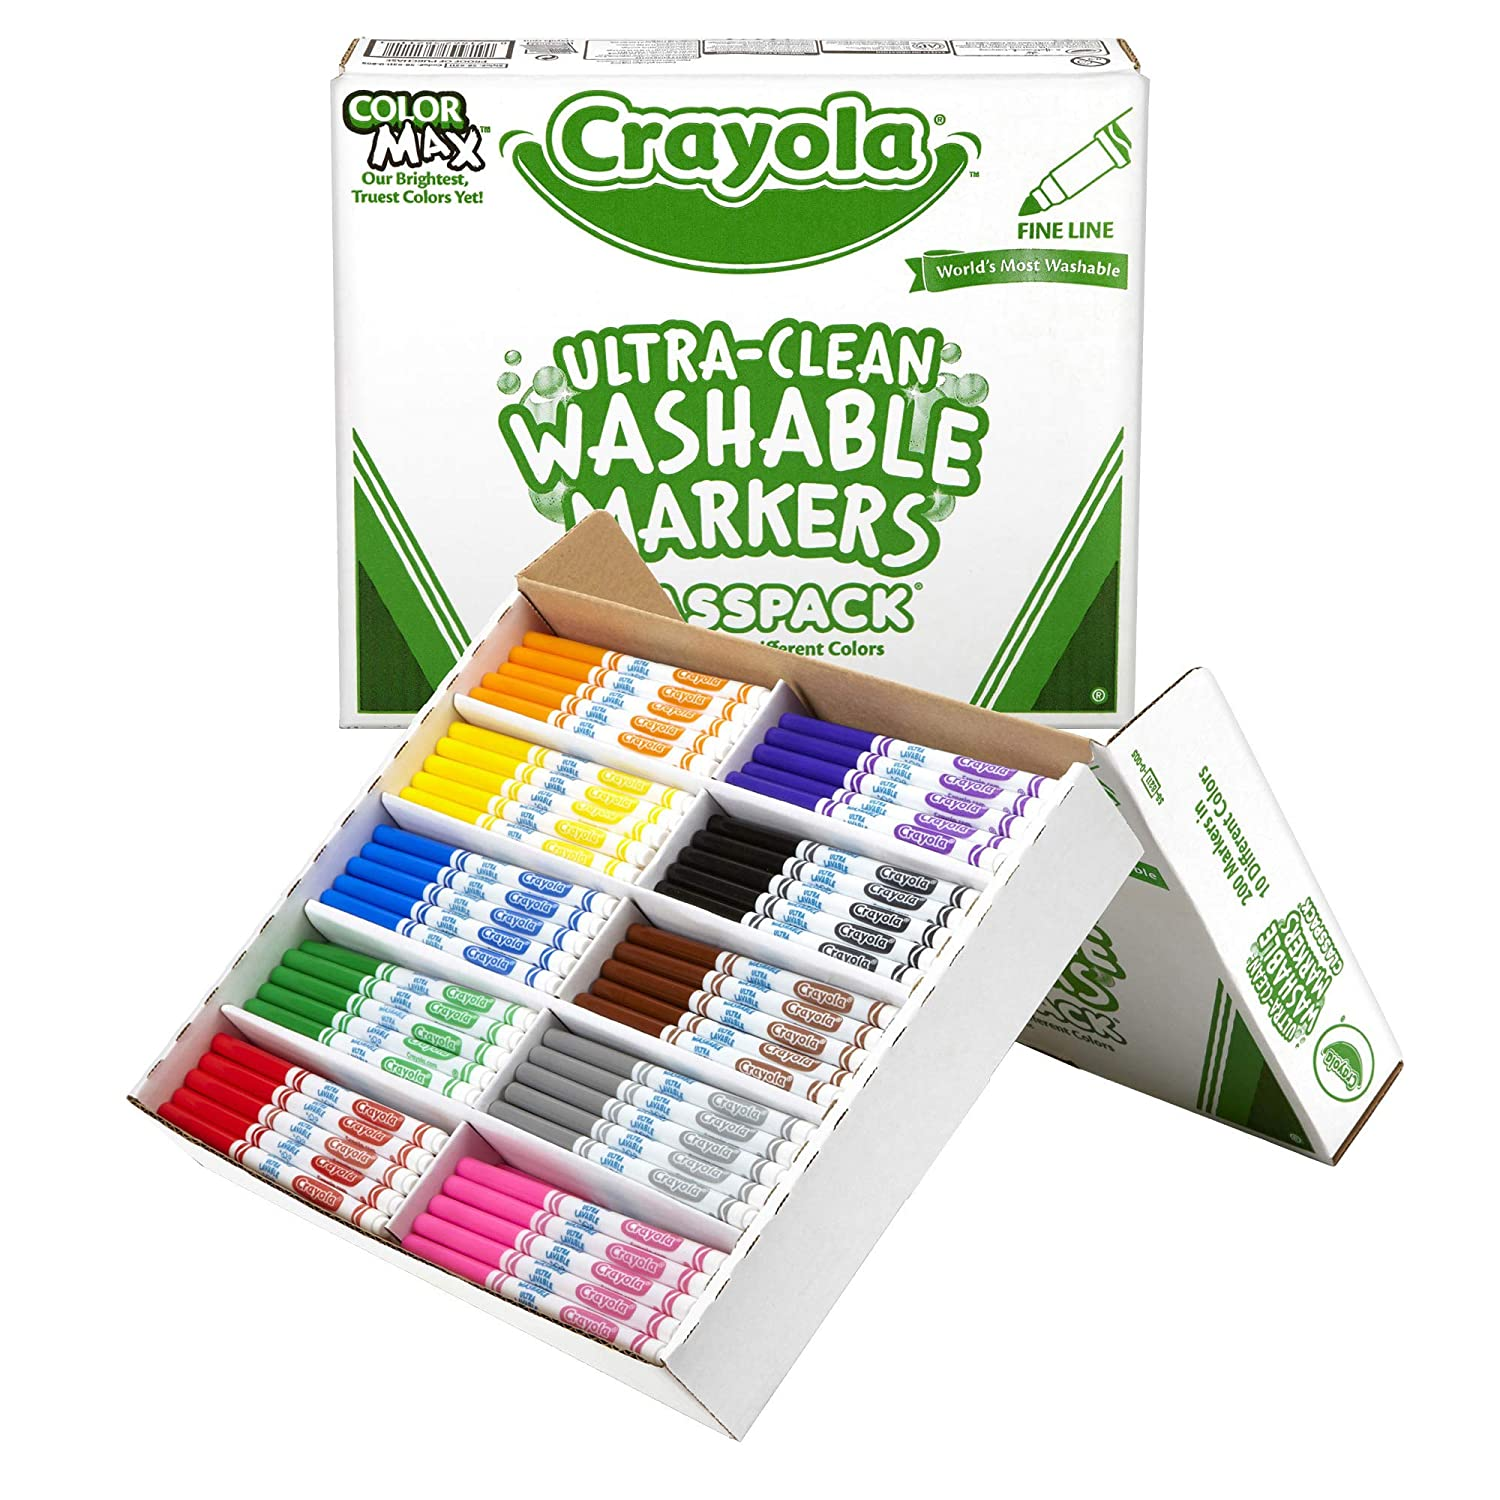 Crayola BIN588211 Ultra-Clean Washable Markers Classpack, Fine Line, 10 Colors, Pack of 200 58-8211